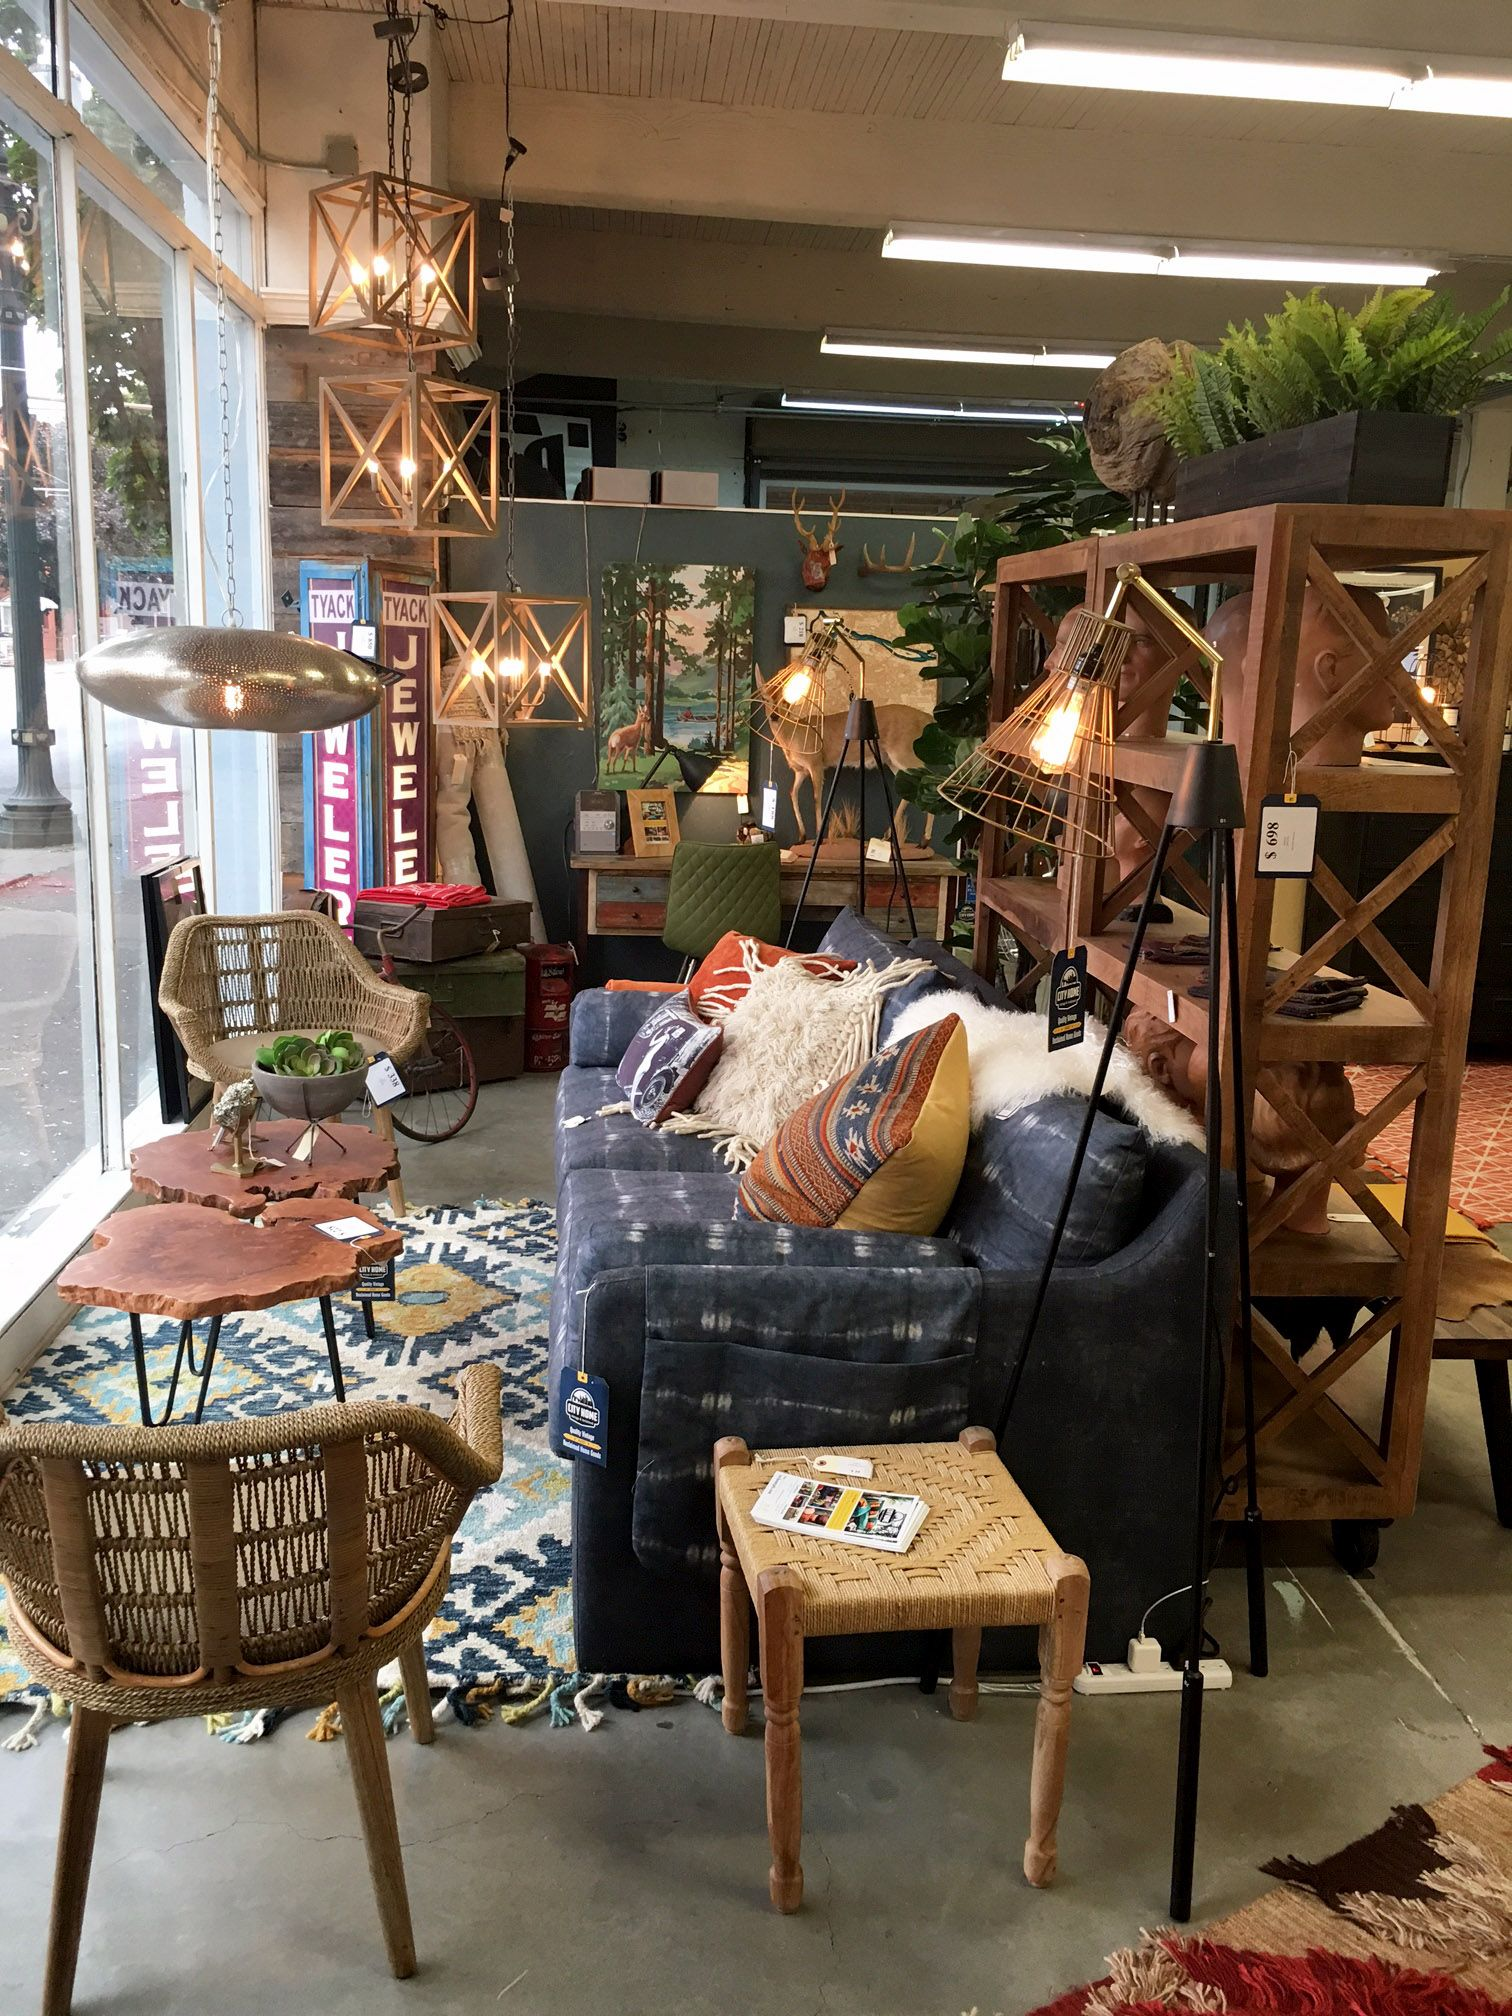 Indigo Dye Sofa From City Home Boutique In Urbanite Portland Oregon Living Room Style Chic Coffee Table Bright Pillows